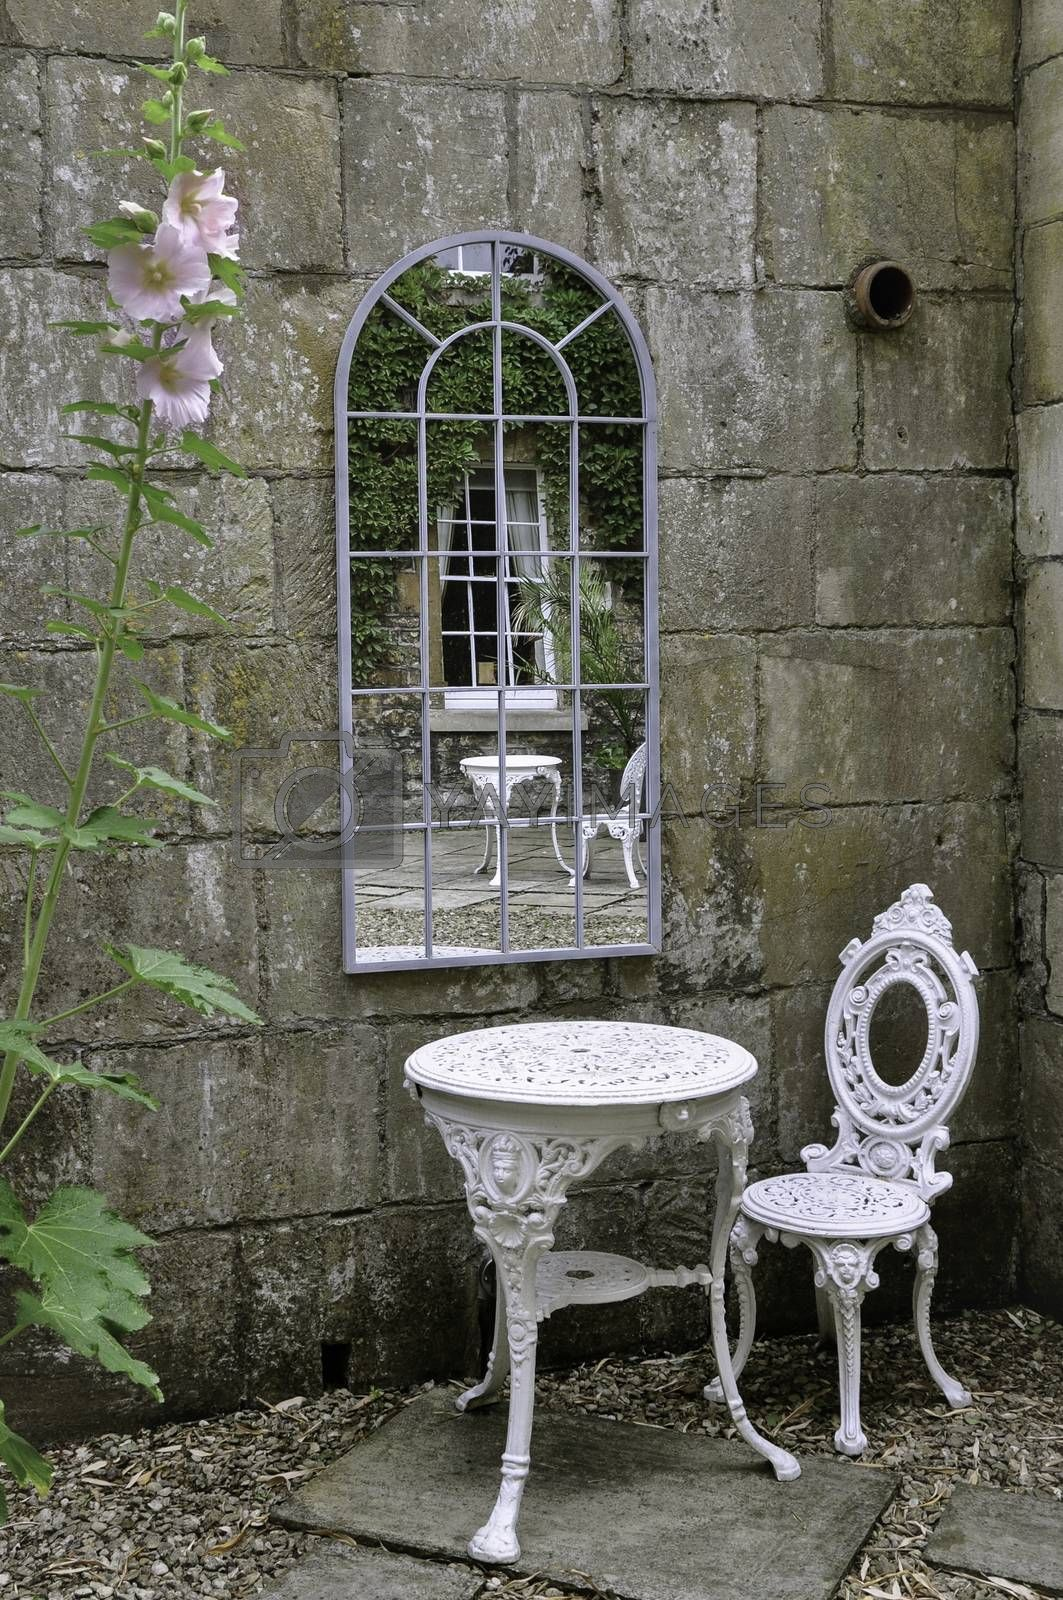 An English courtyard country garden, with white wrought iron table and chair against a Georgian style window